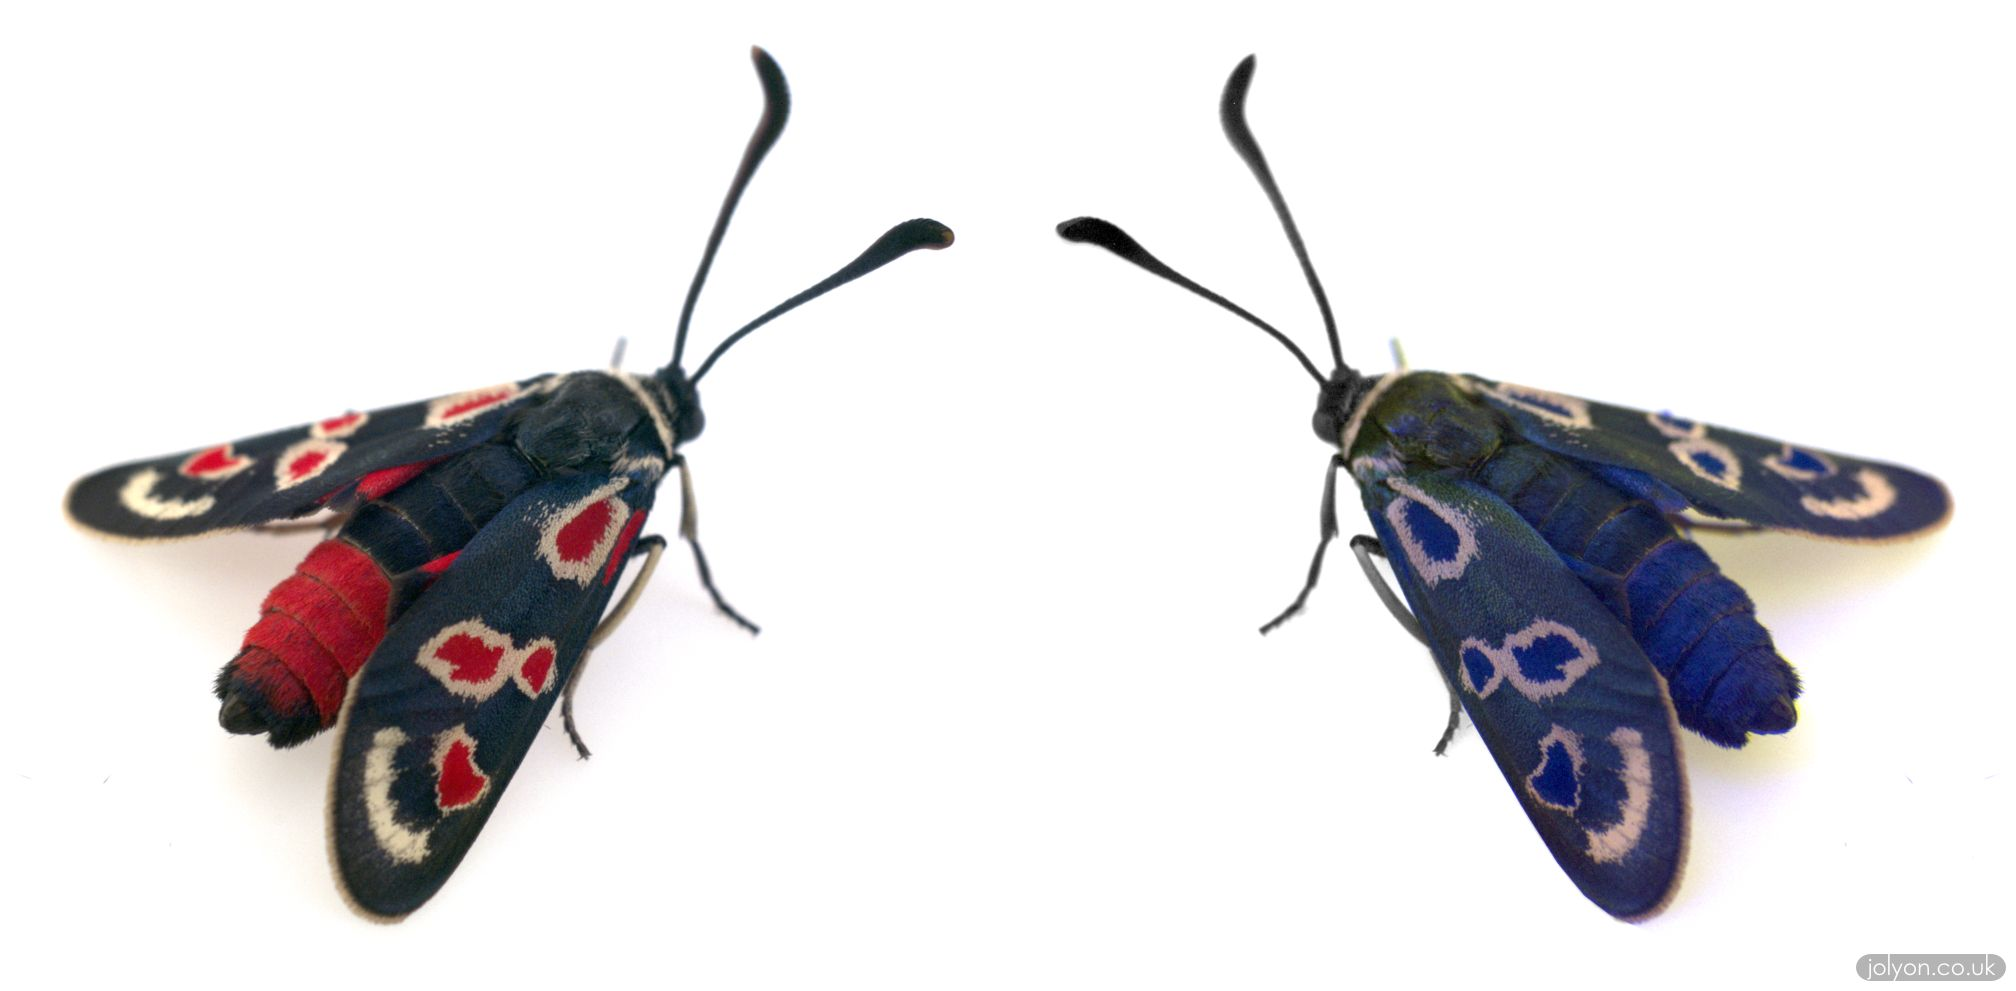 The Provence burnet moth Zygaena occitanica, in blue-tit vision. On the left is bluetit LMS (similar to human RGB), and on the right is bluetit MSU (false colour showing UV as blue).